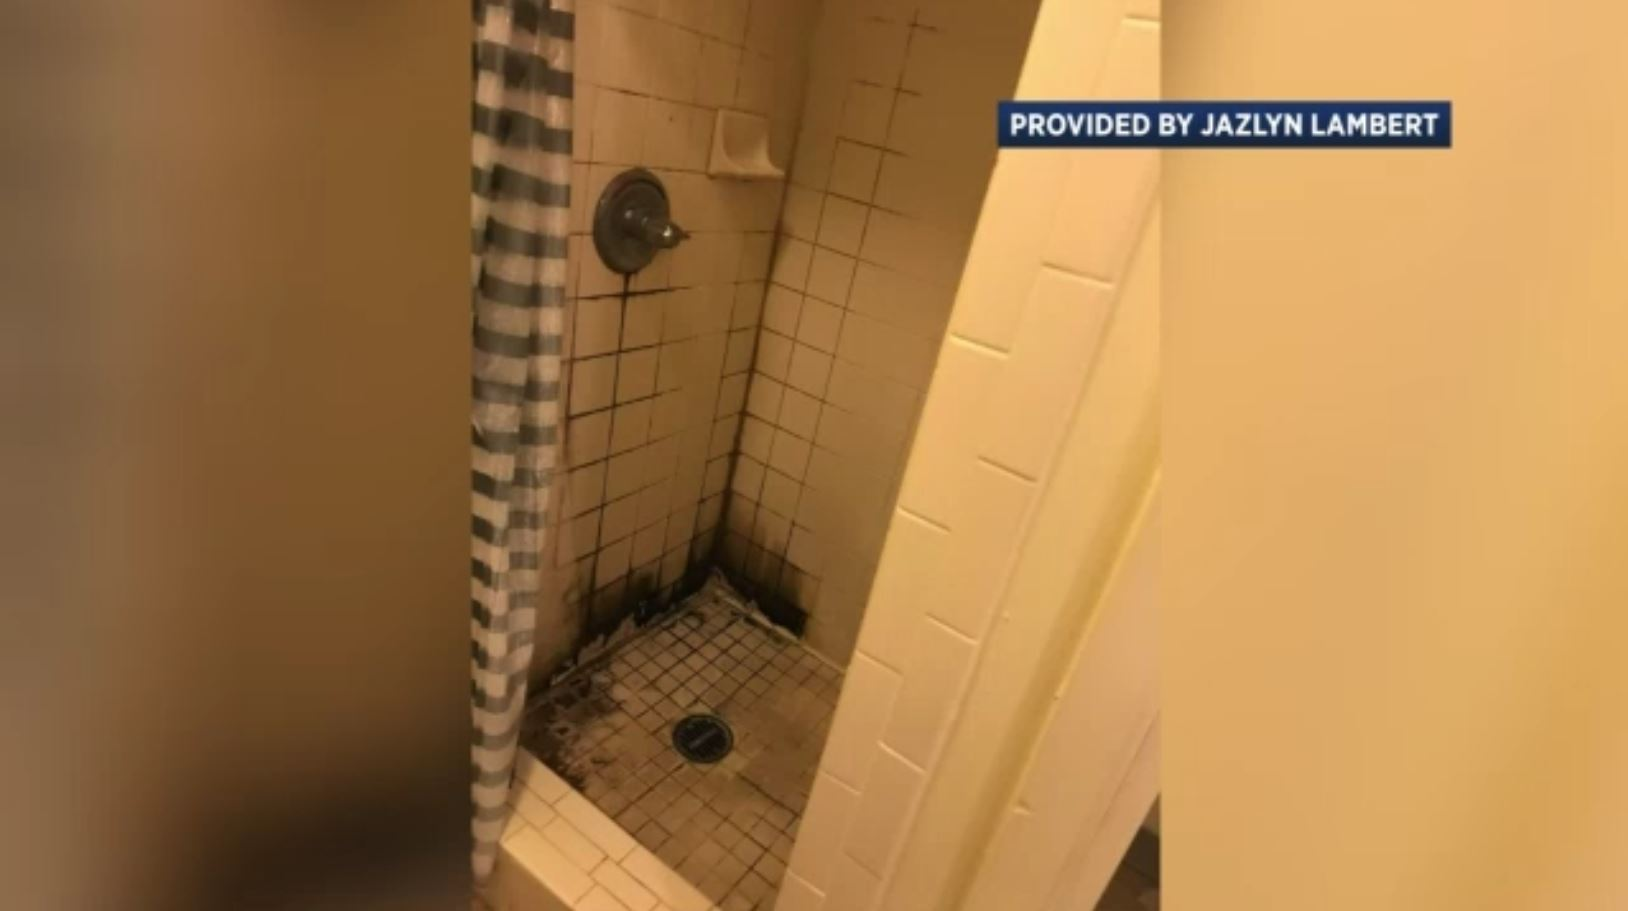 Jcsu Campus Map.Jcsu Student Back To Class After Concerns About Mold In Dorm